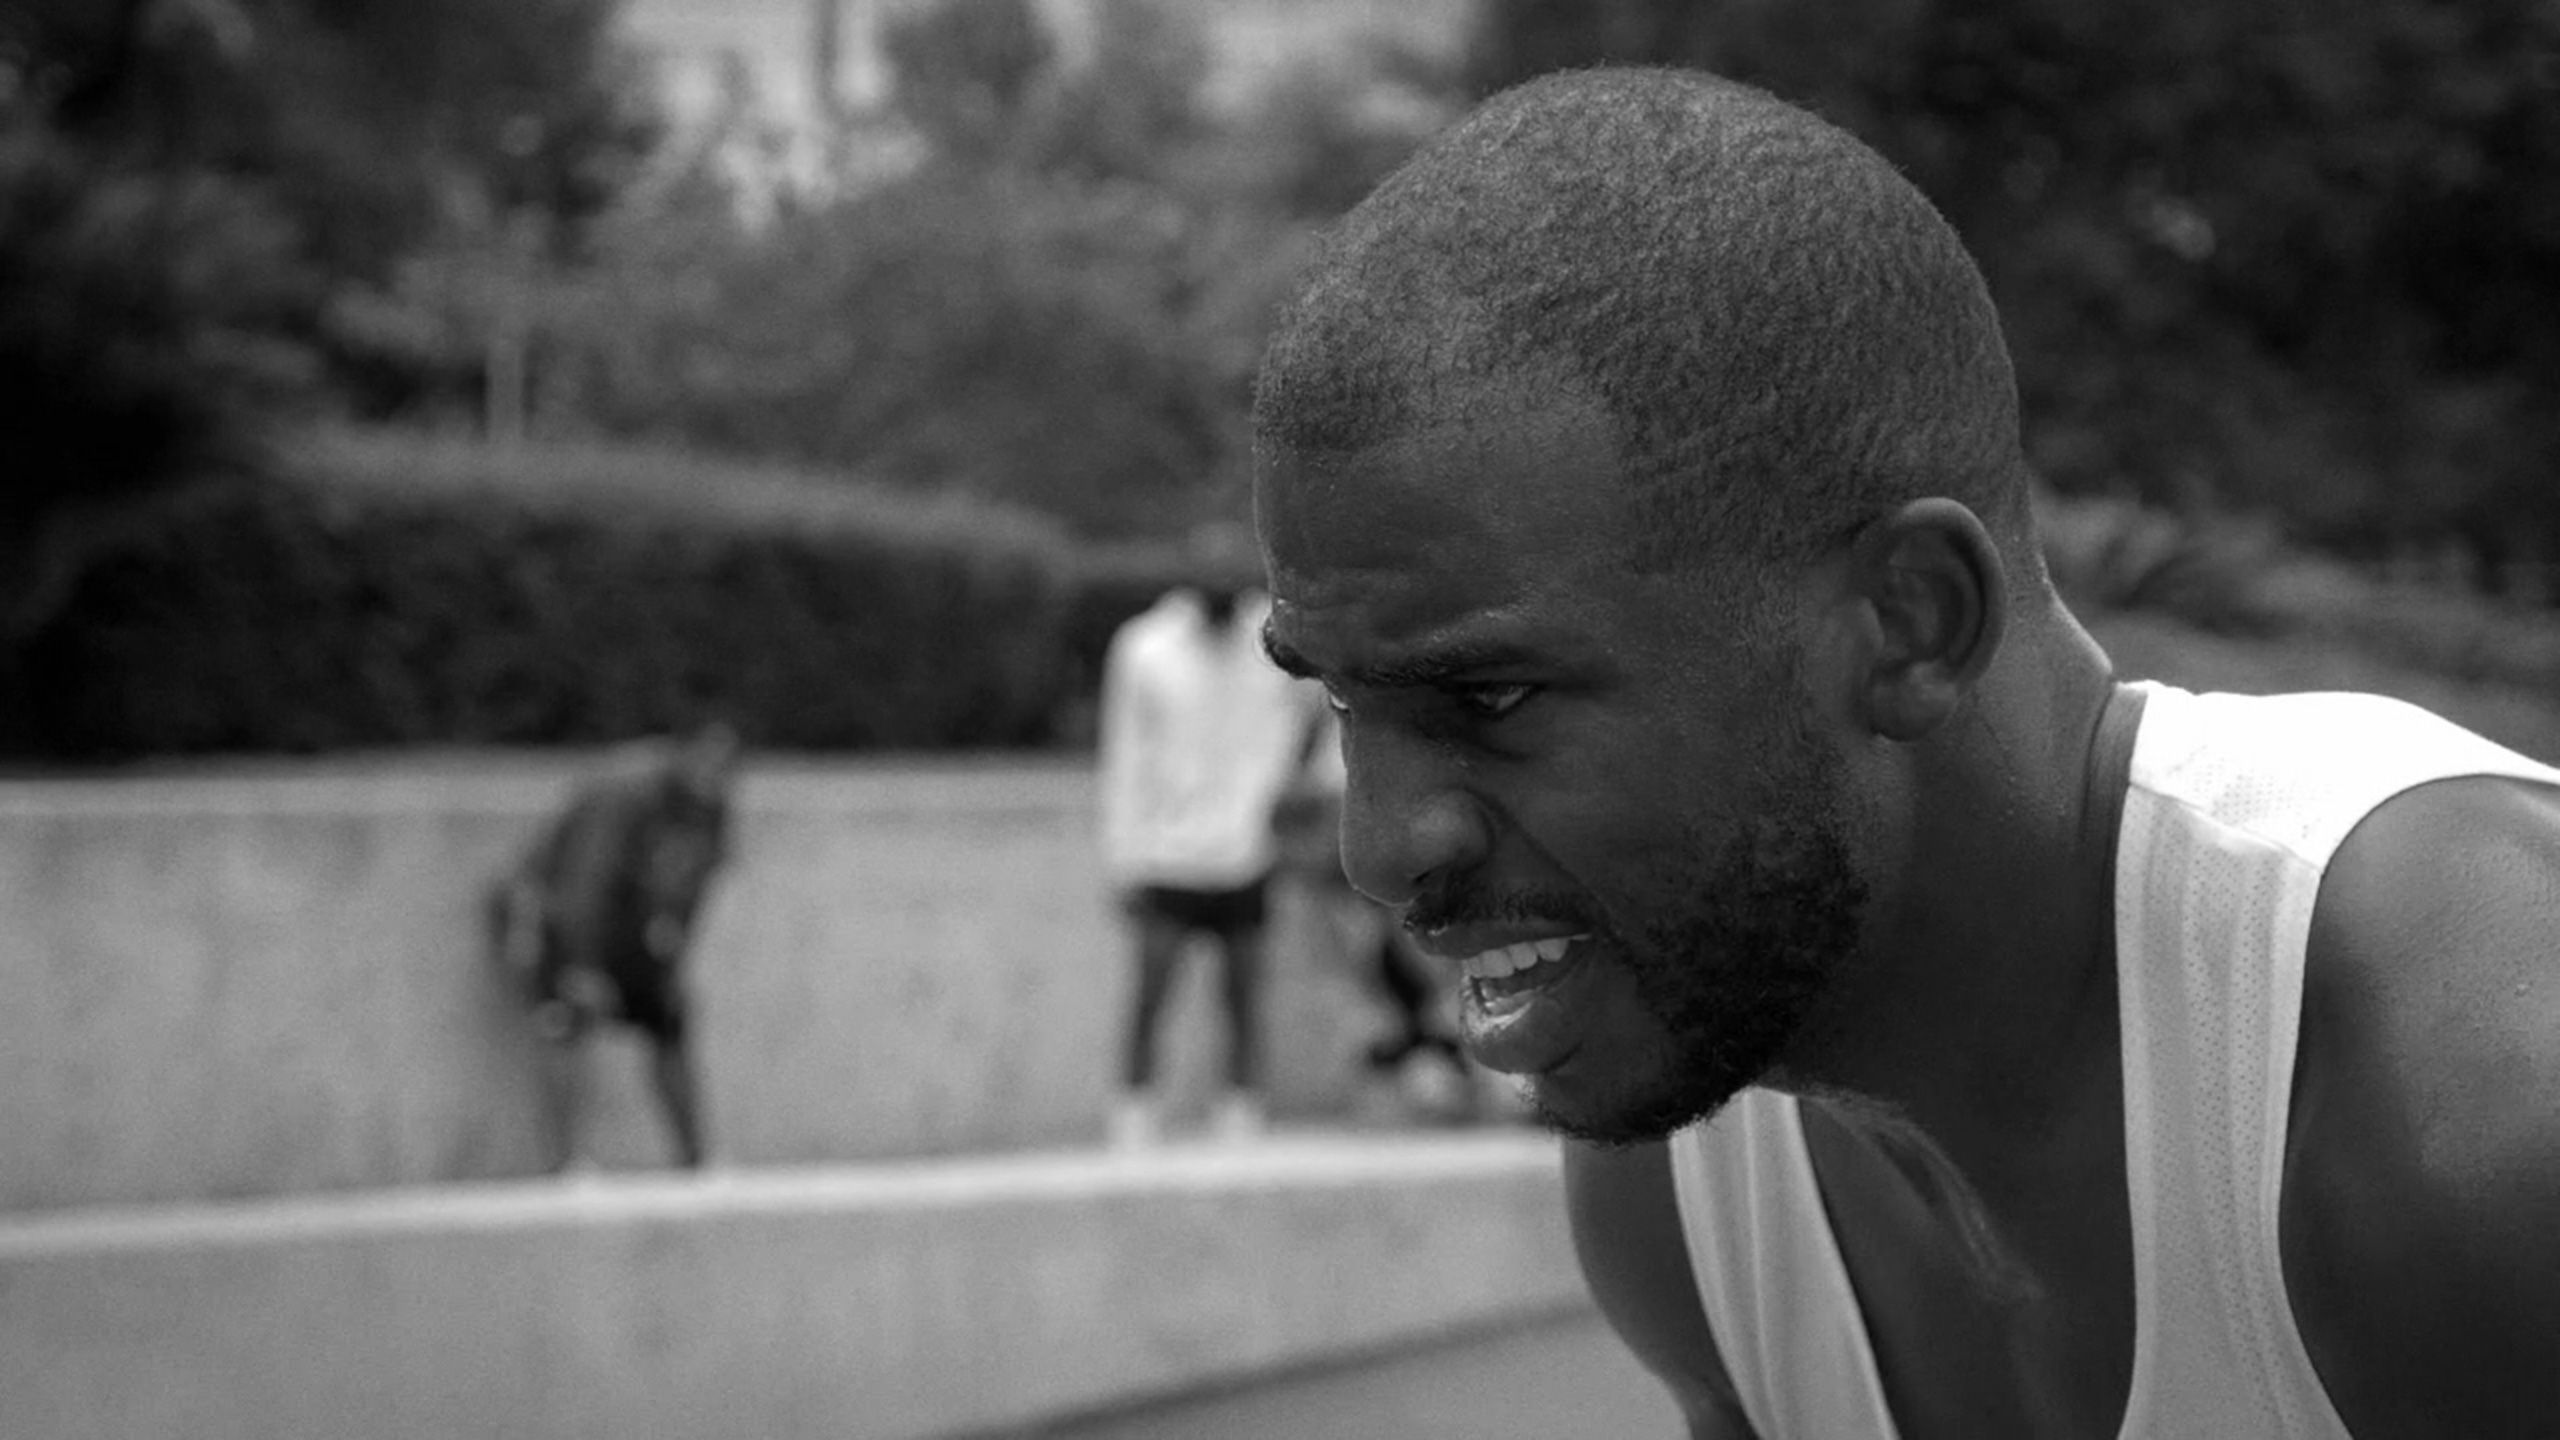 Chris Paul's Chapter 3 - Episode 3